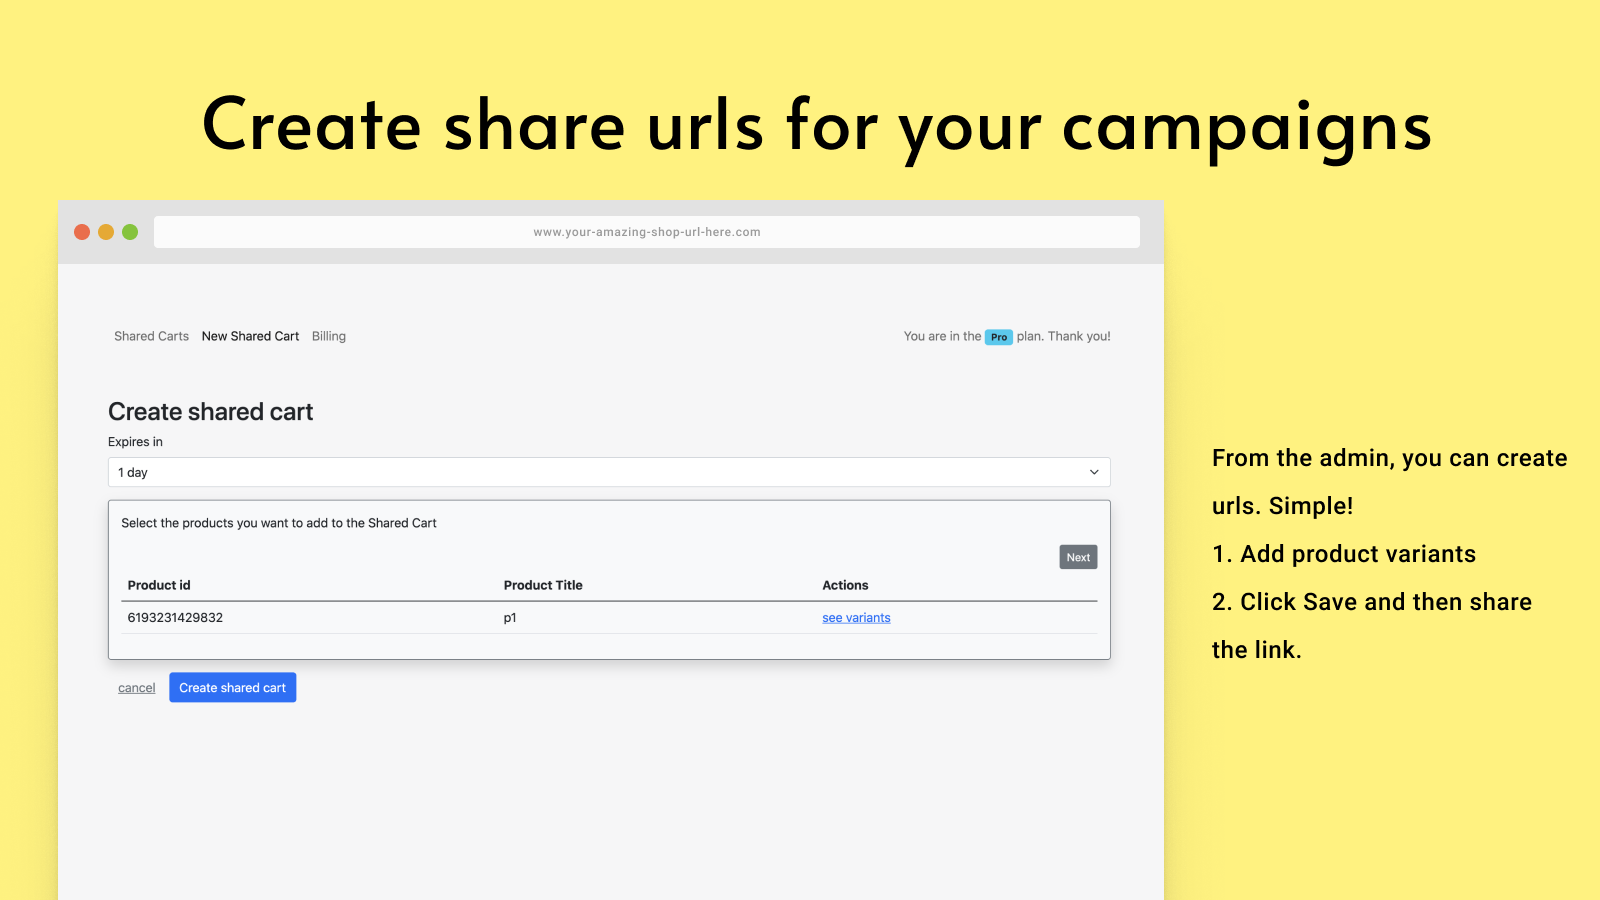 Create urls to share carts from the admin.